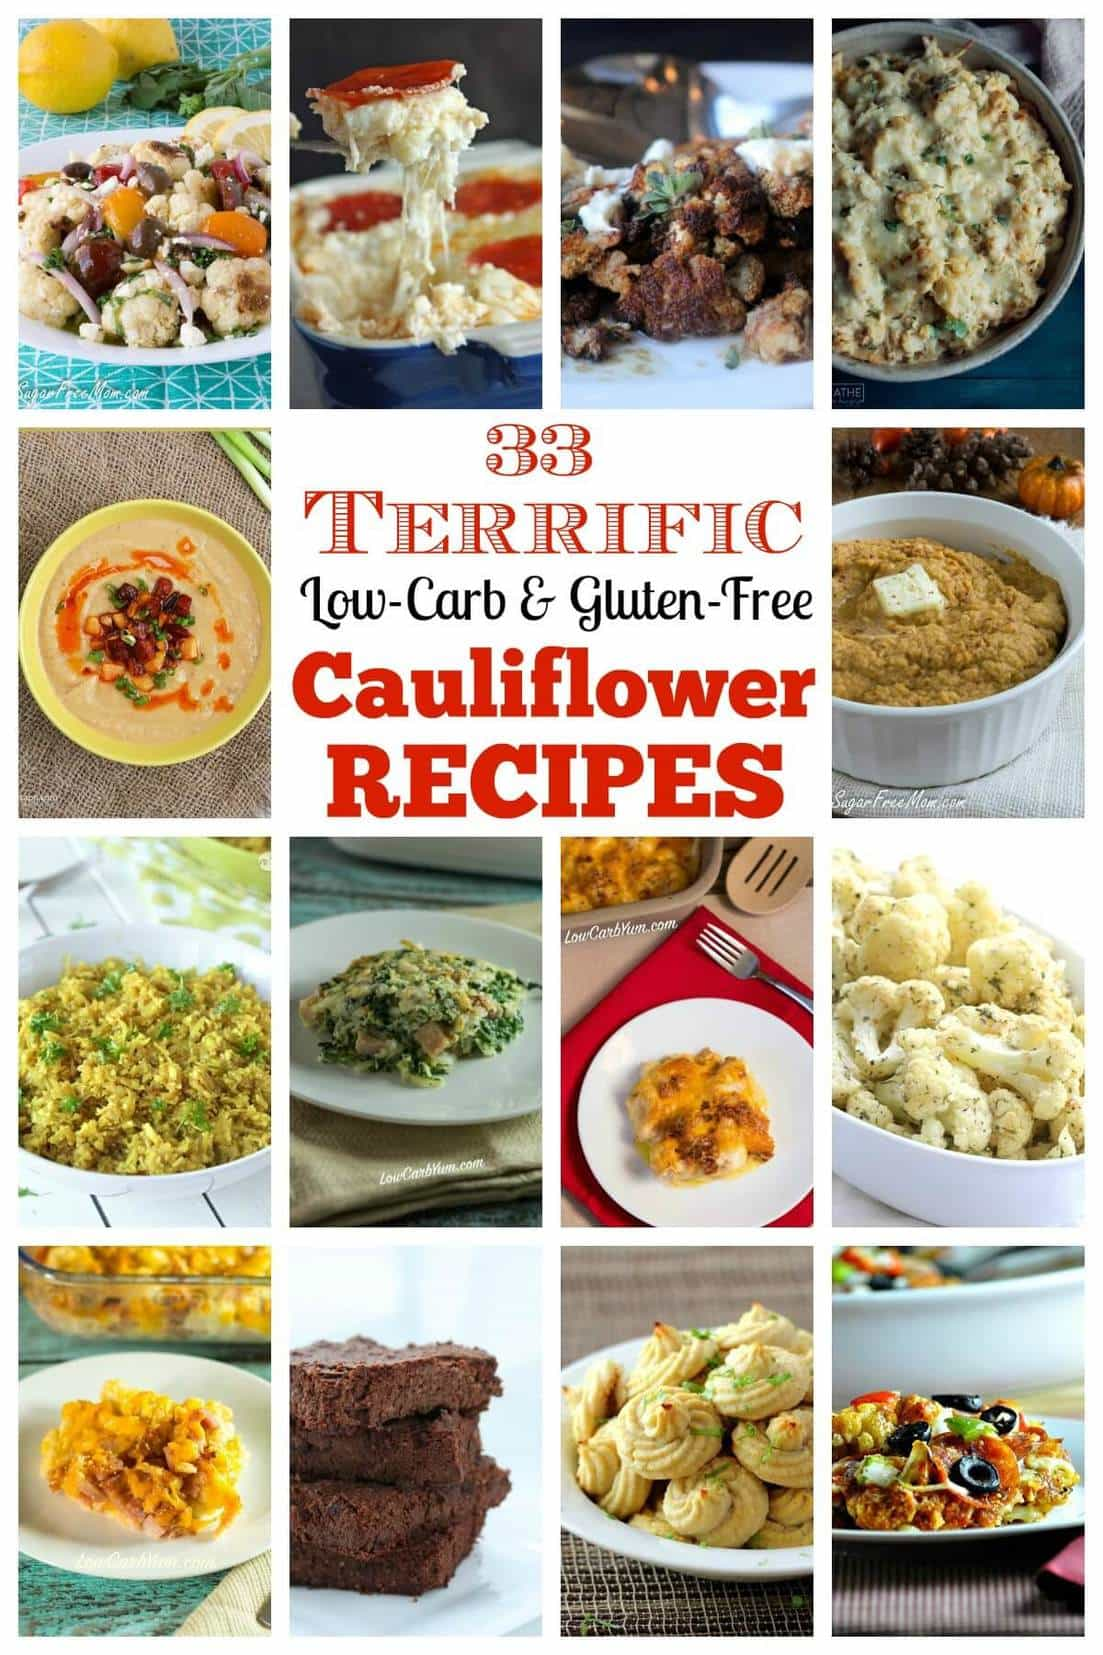 Cauliflower health benefits are plentiful. Here's a few reasons why you should be eating cauliflower along with 33 terrific low carb recipes.